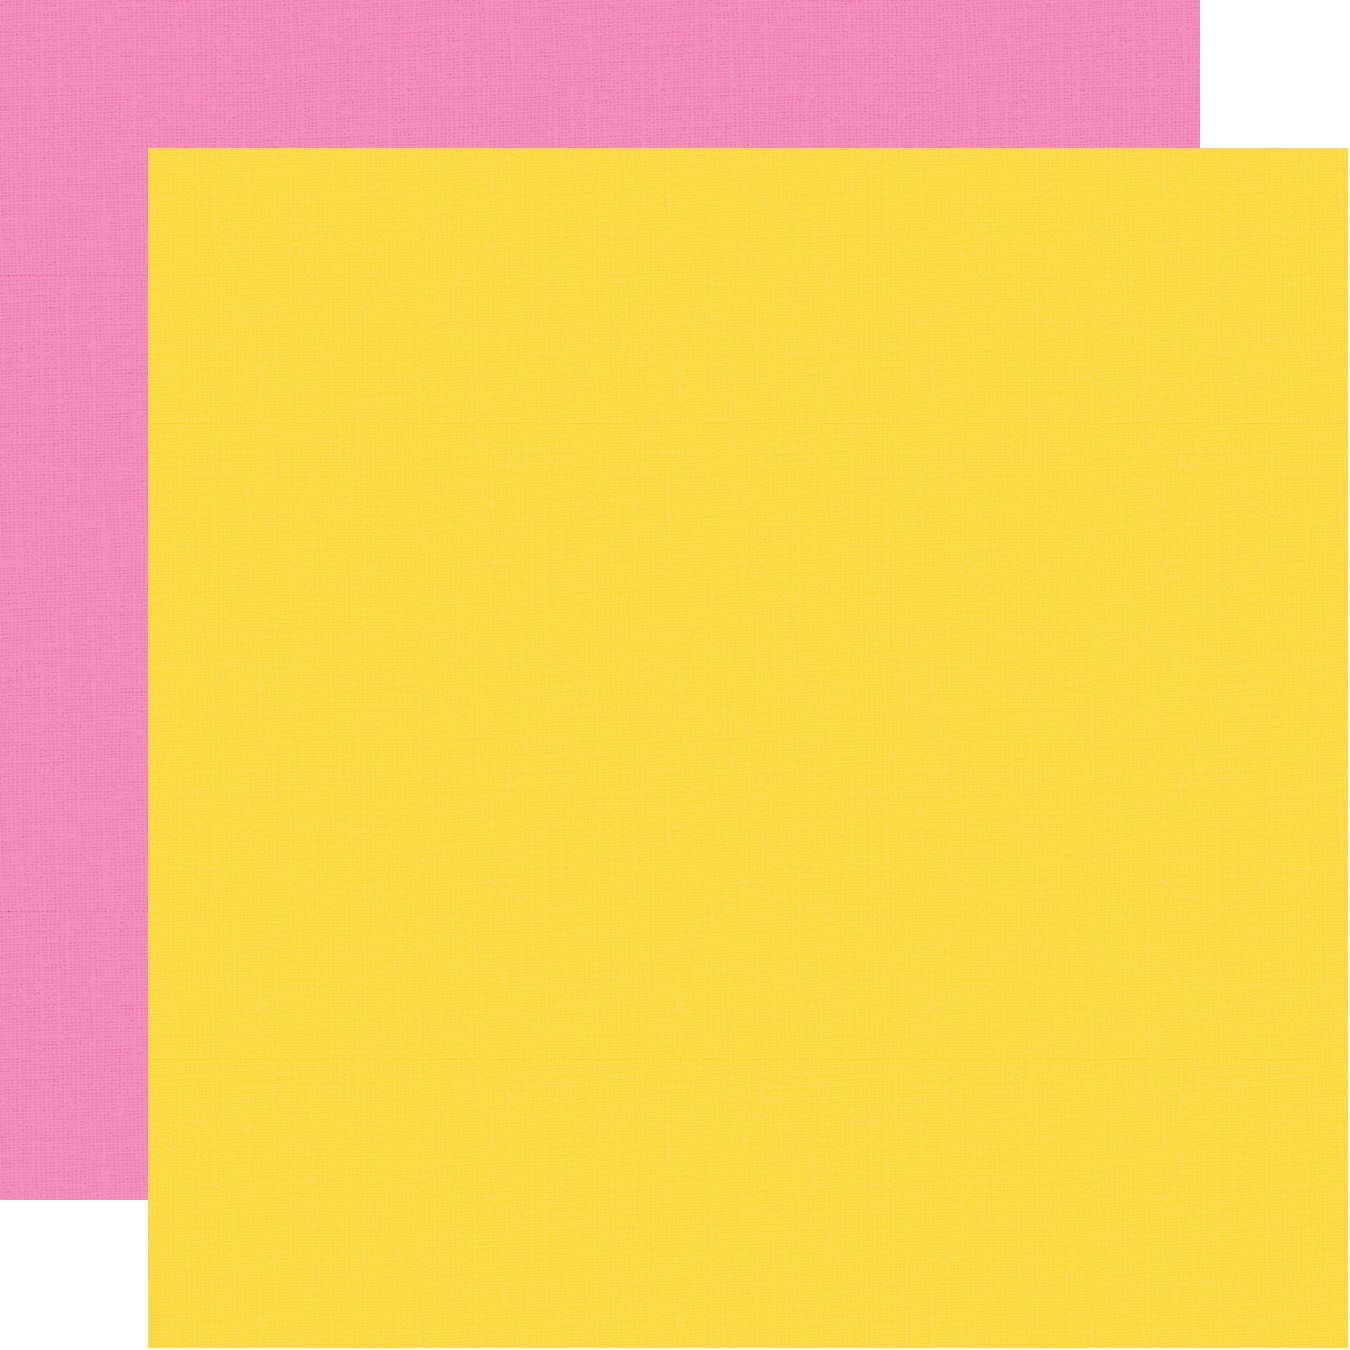 Little Princess Double-Sided Cardstock 12X12-Pink/Yellow Simple Basic